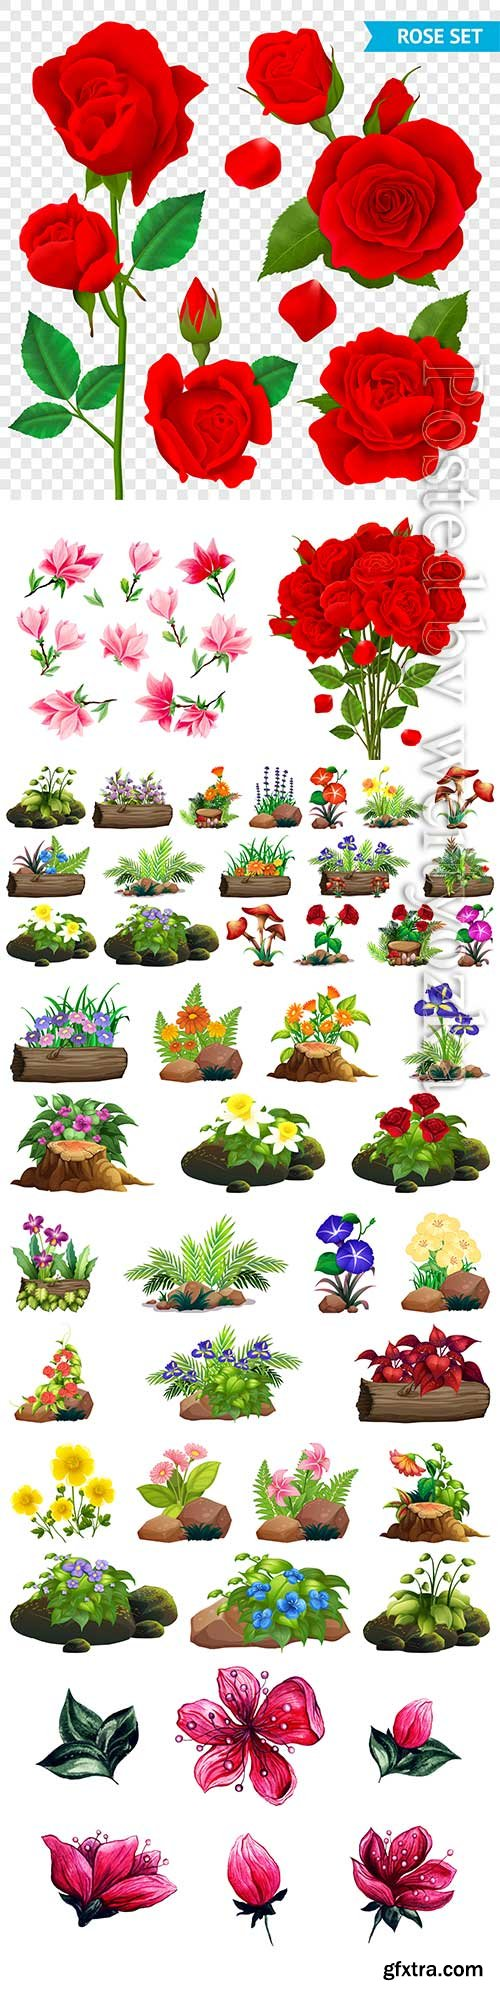 Flowers and floral arrangements in vector